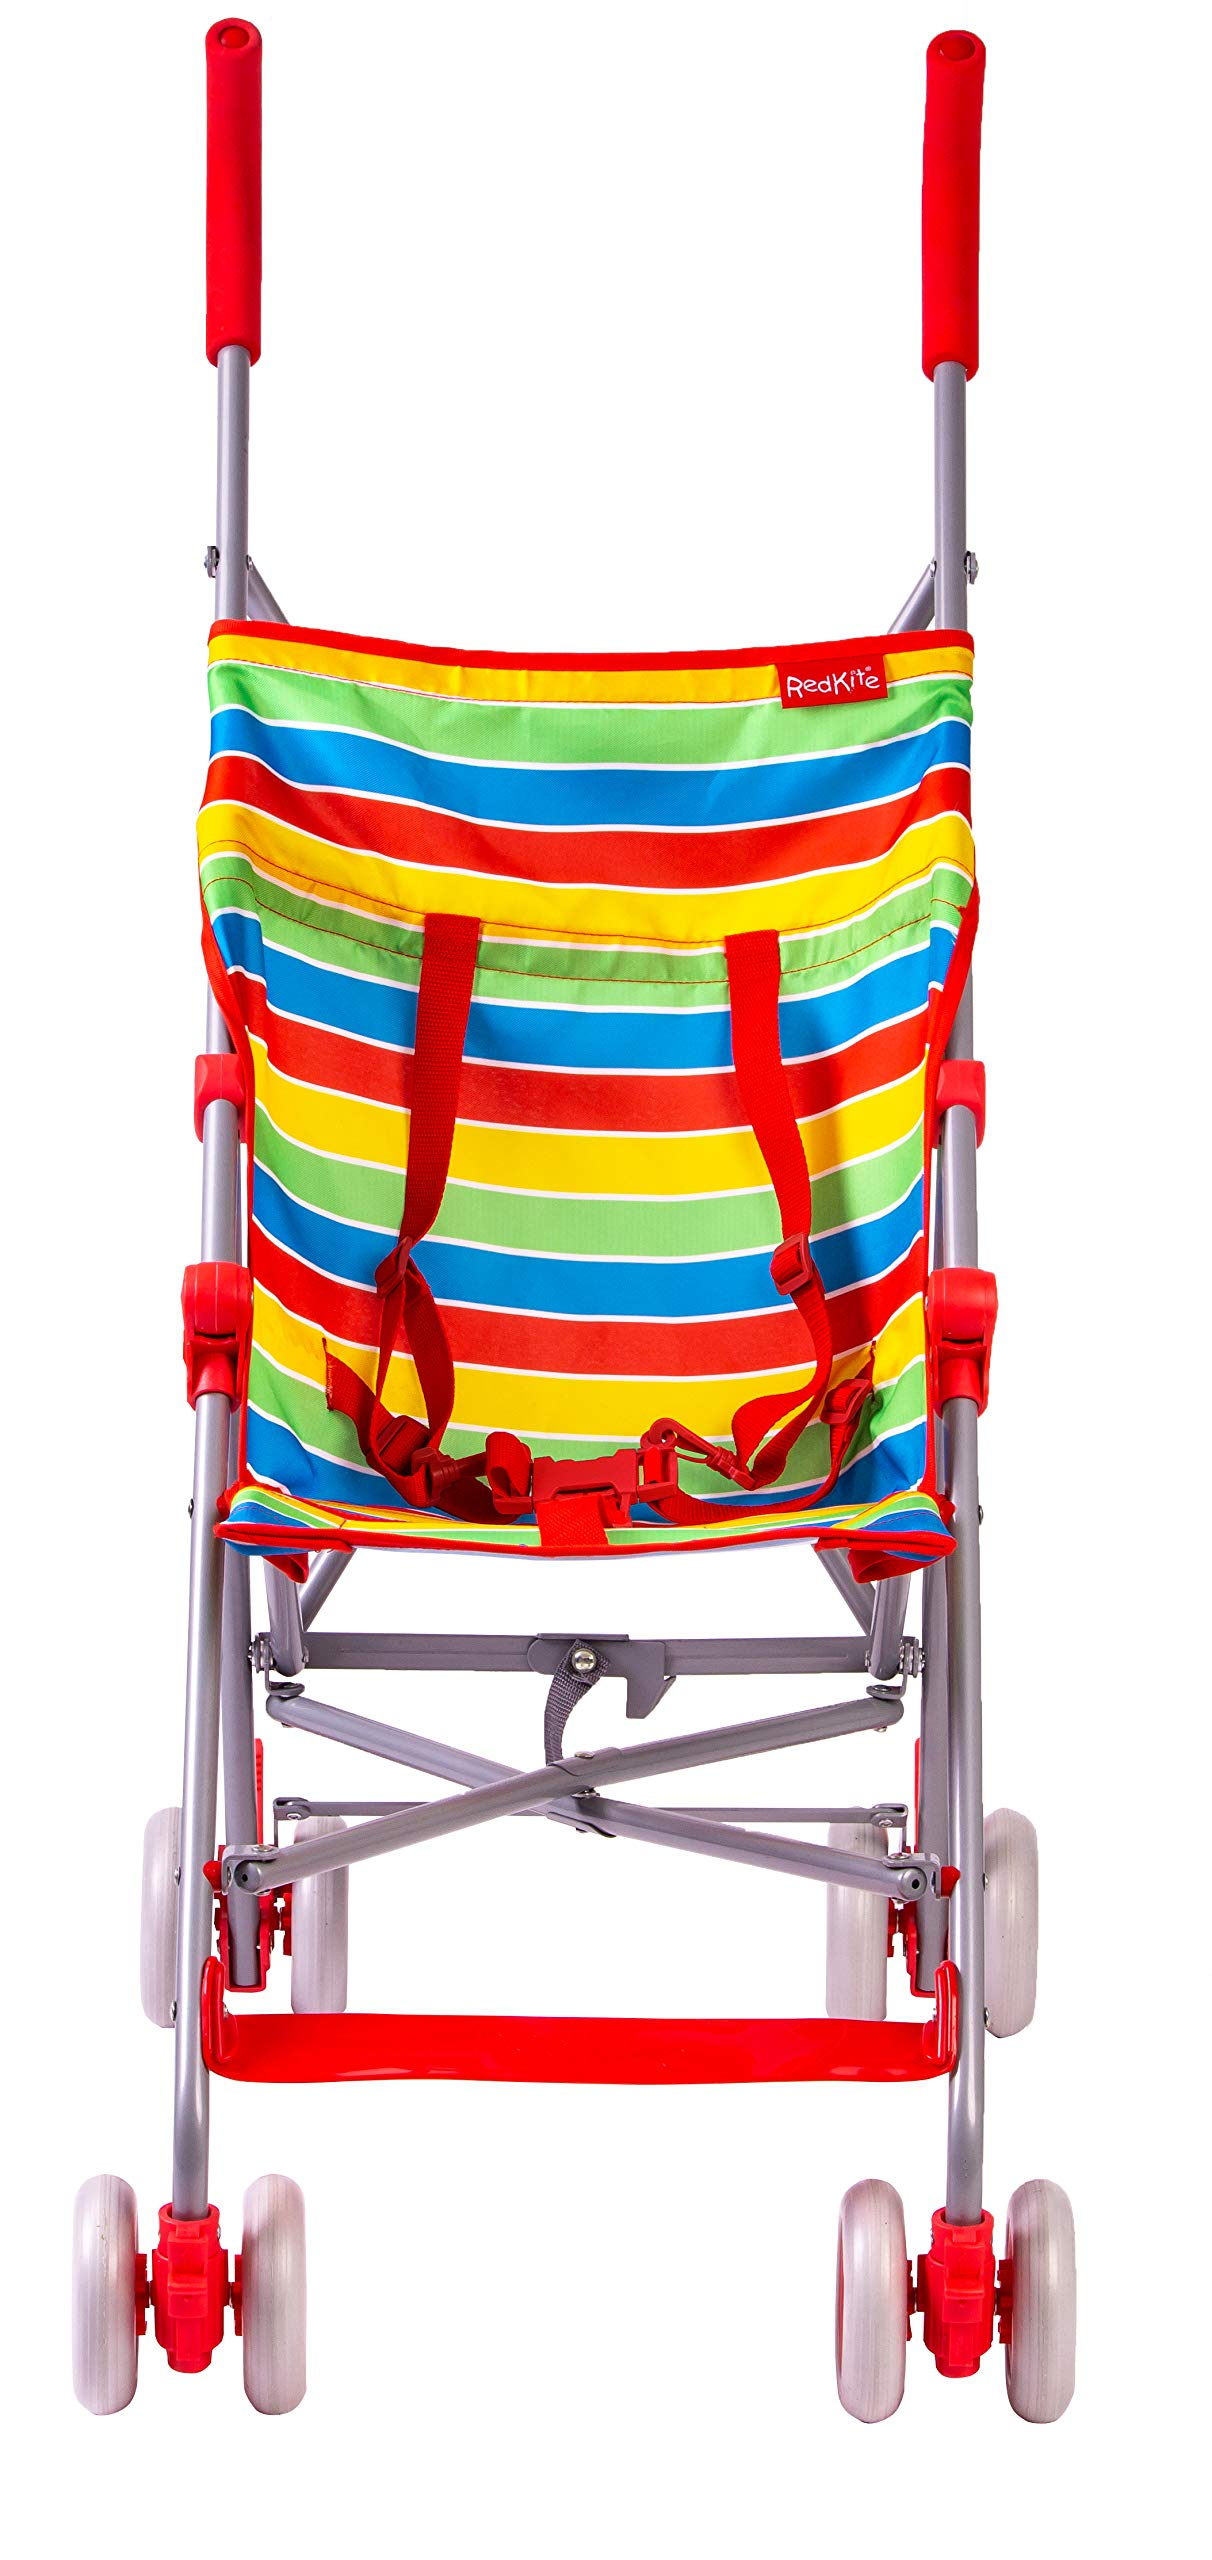 Red Kite Baby Push Me Lite Summer Stripe Pushchair Red Kite Ideal for holidays Makes a perfect second buggy Suitable from 6 months 2